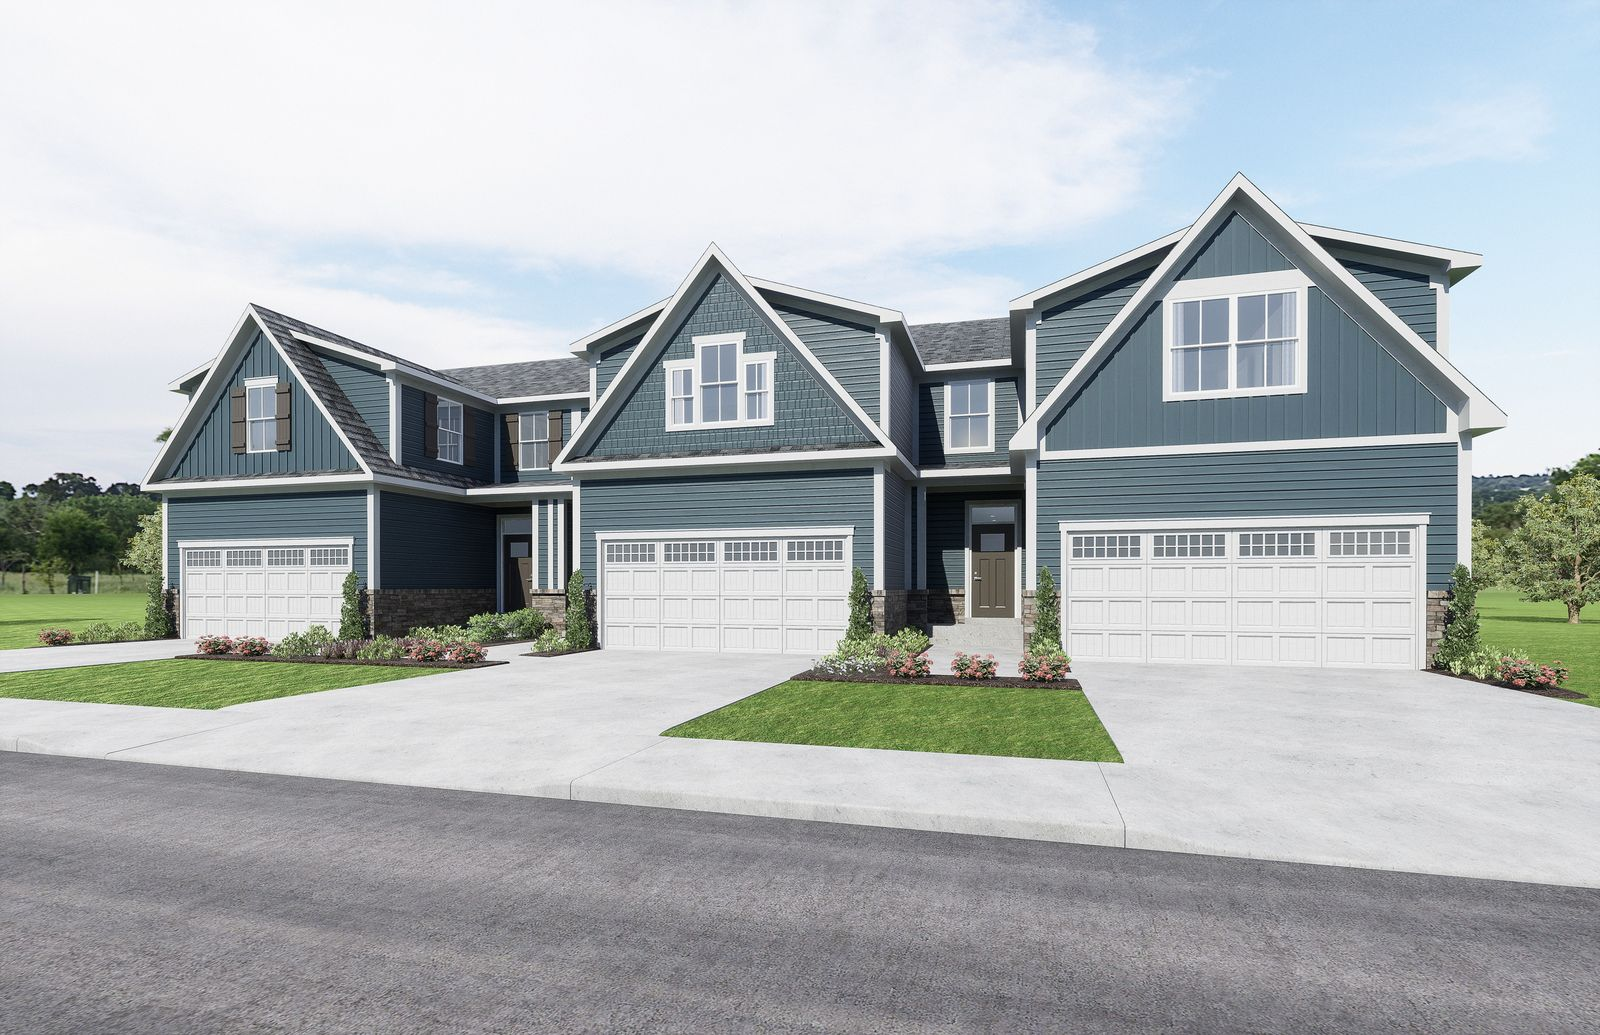 BEST VALUE LOW-MAINTENANCE TOWNHOMES NEAR LAKE NORMAN. FROM LOW $300S:Looking for a townhome with 1st-floor owner suite and the design features you love?Join the VIP List tolearn more!